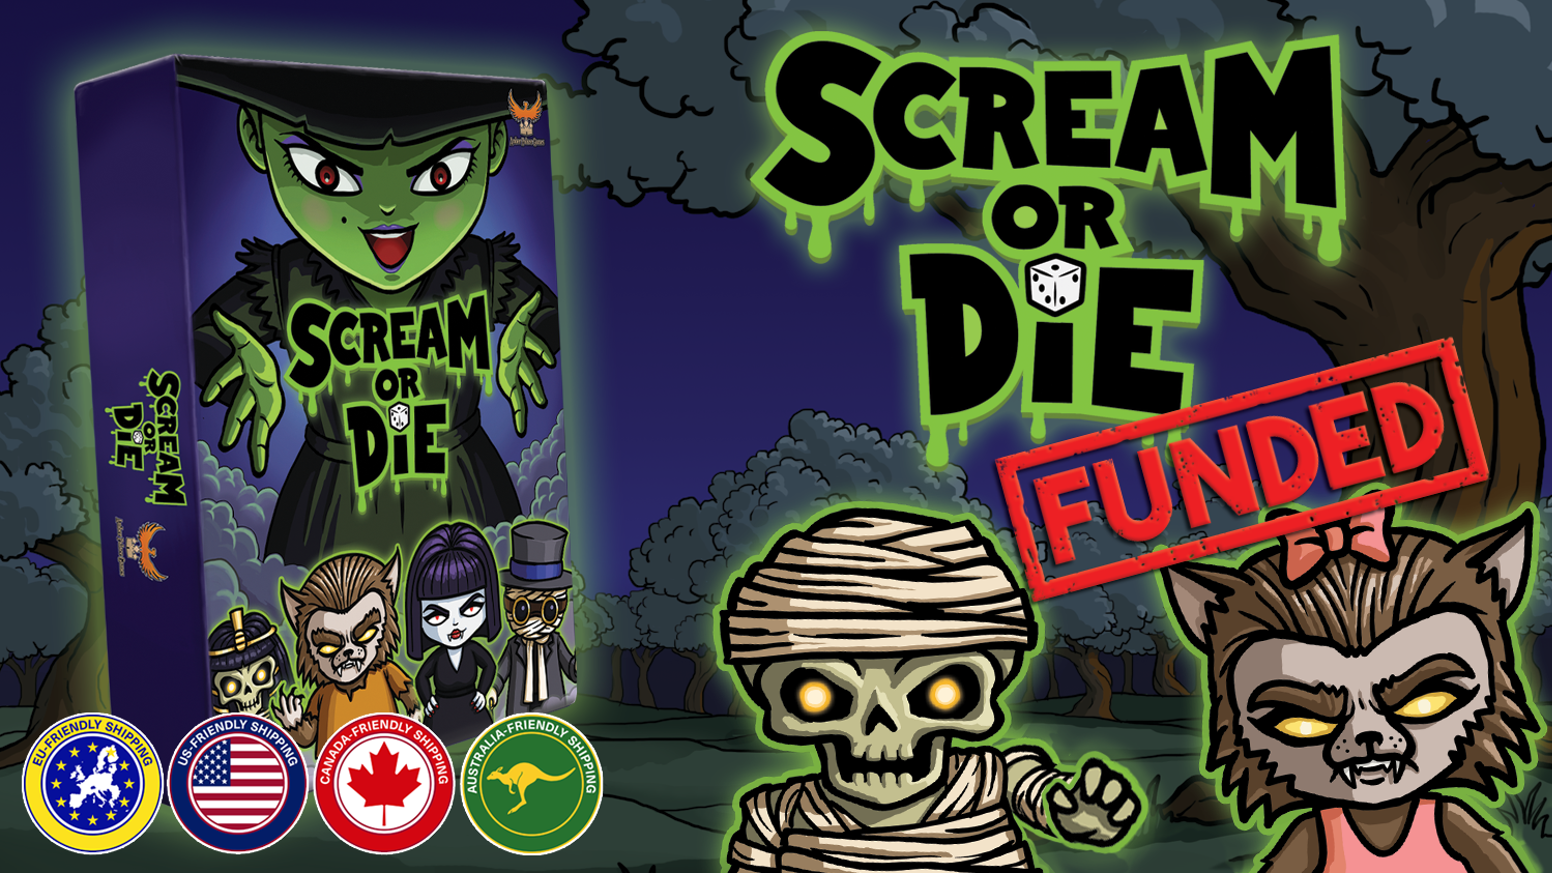 Compete to Collect 13 Candy on Halloween Night in this fast-paced, family friendly dice game for 2-8 monsters. People can play too.